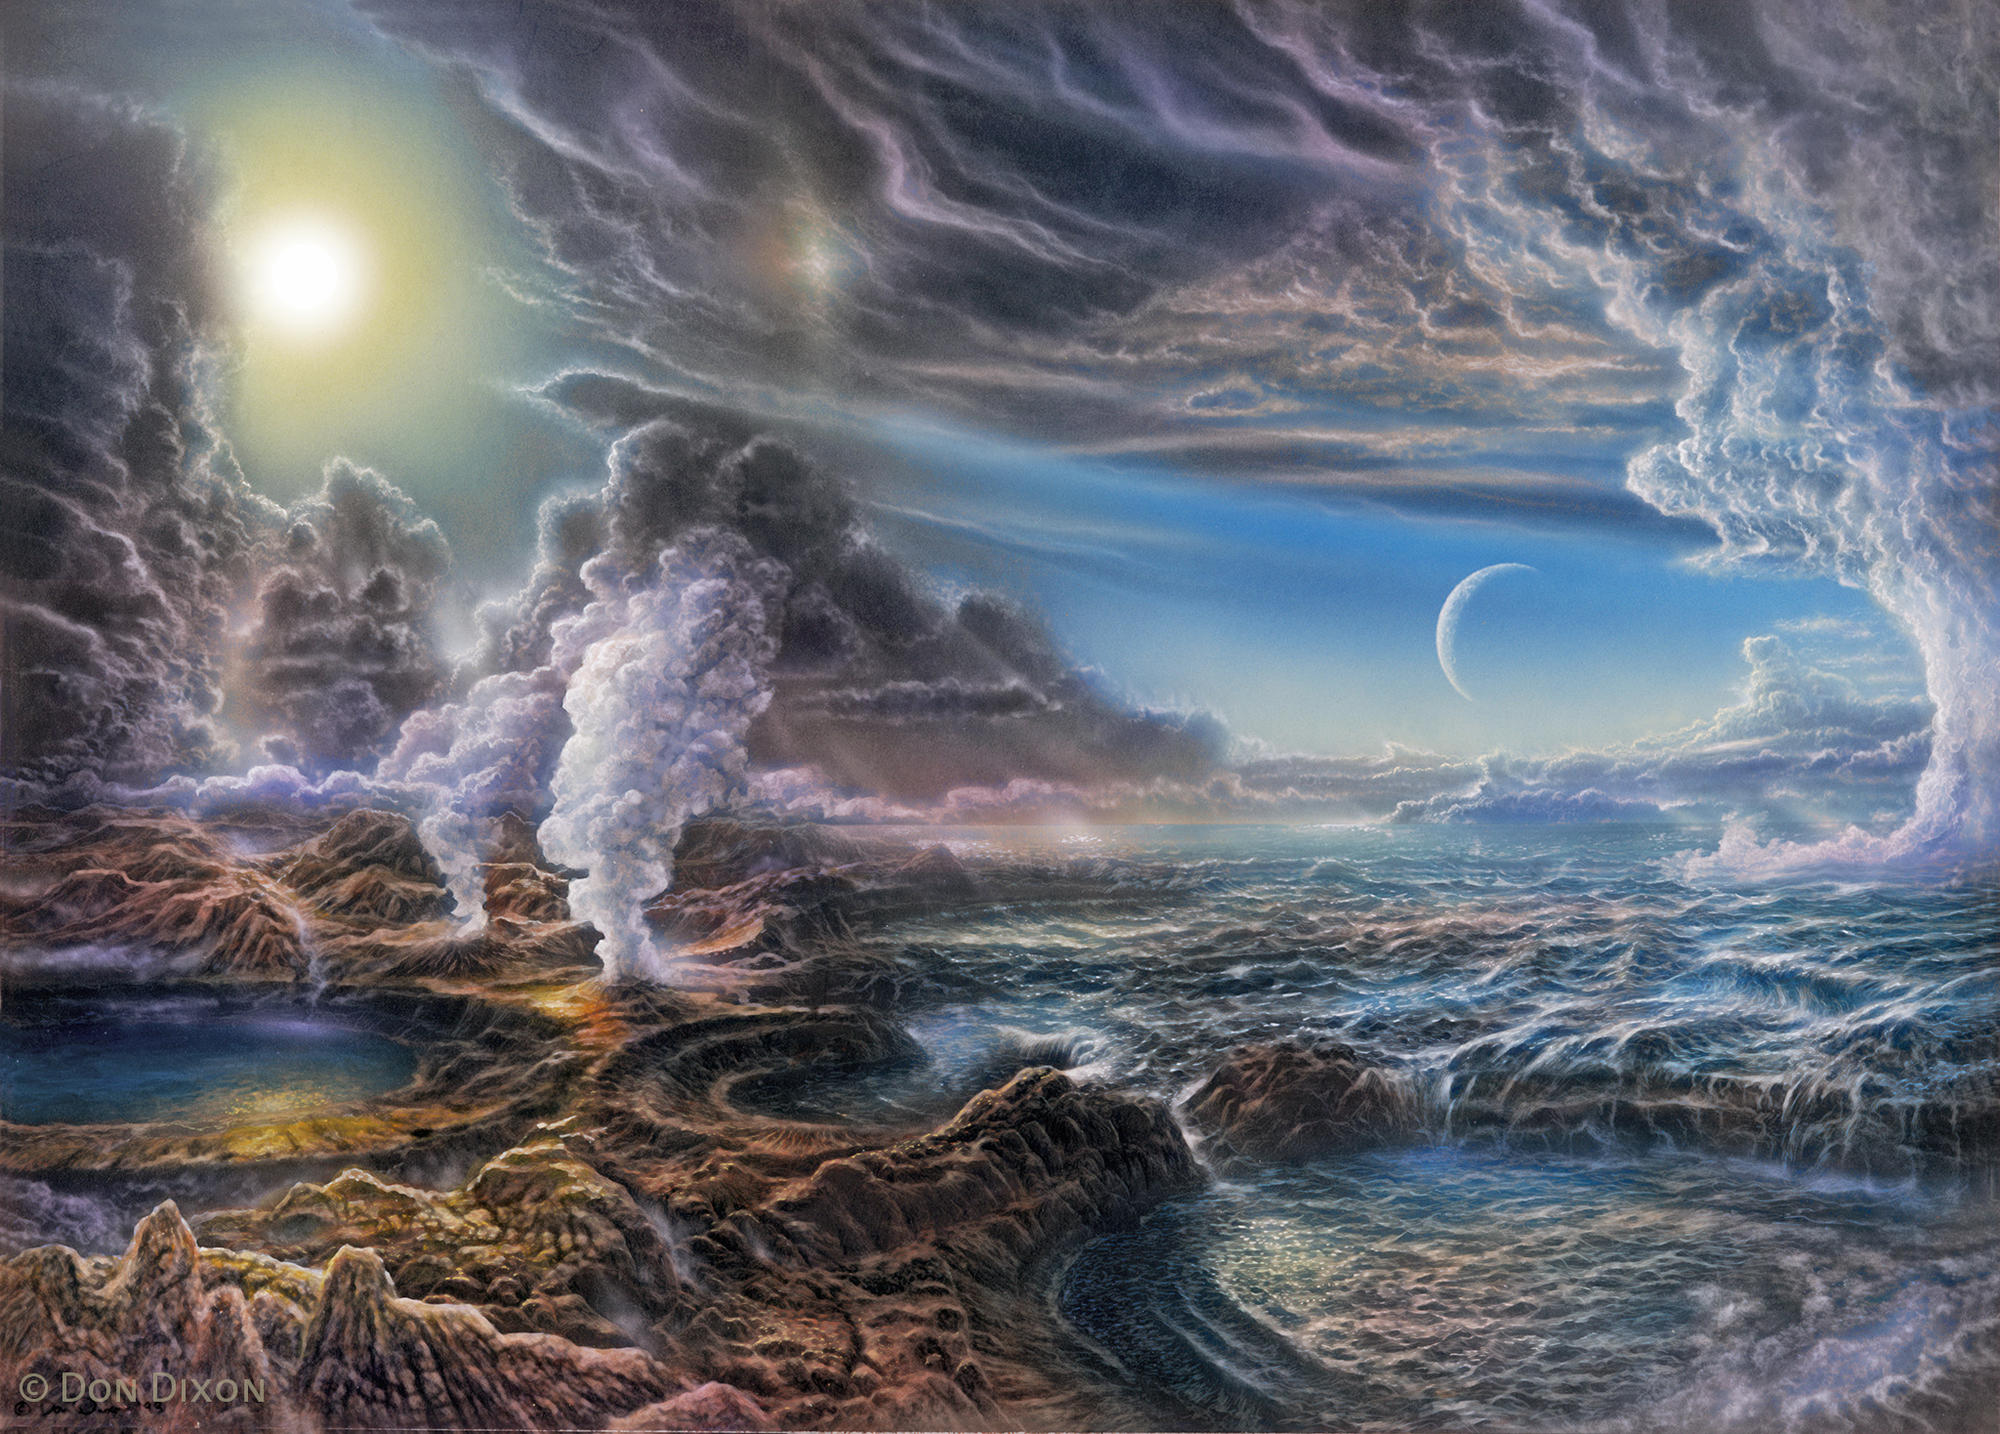 An artist's rendition of early Earth